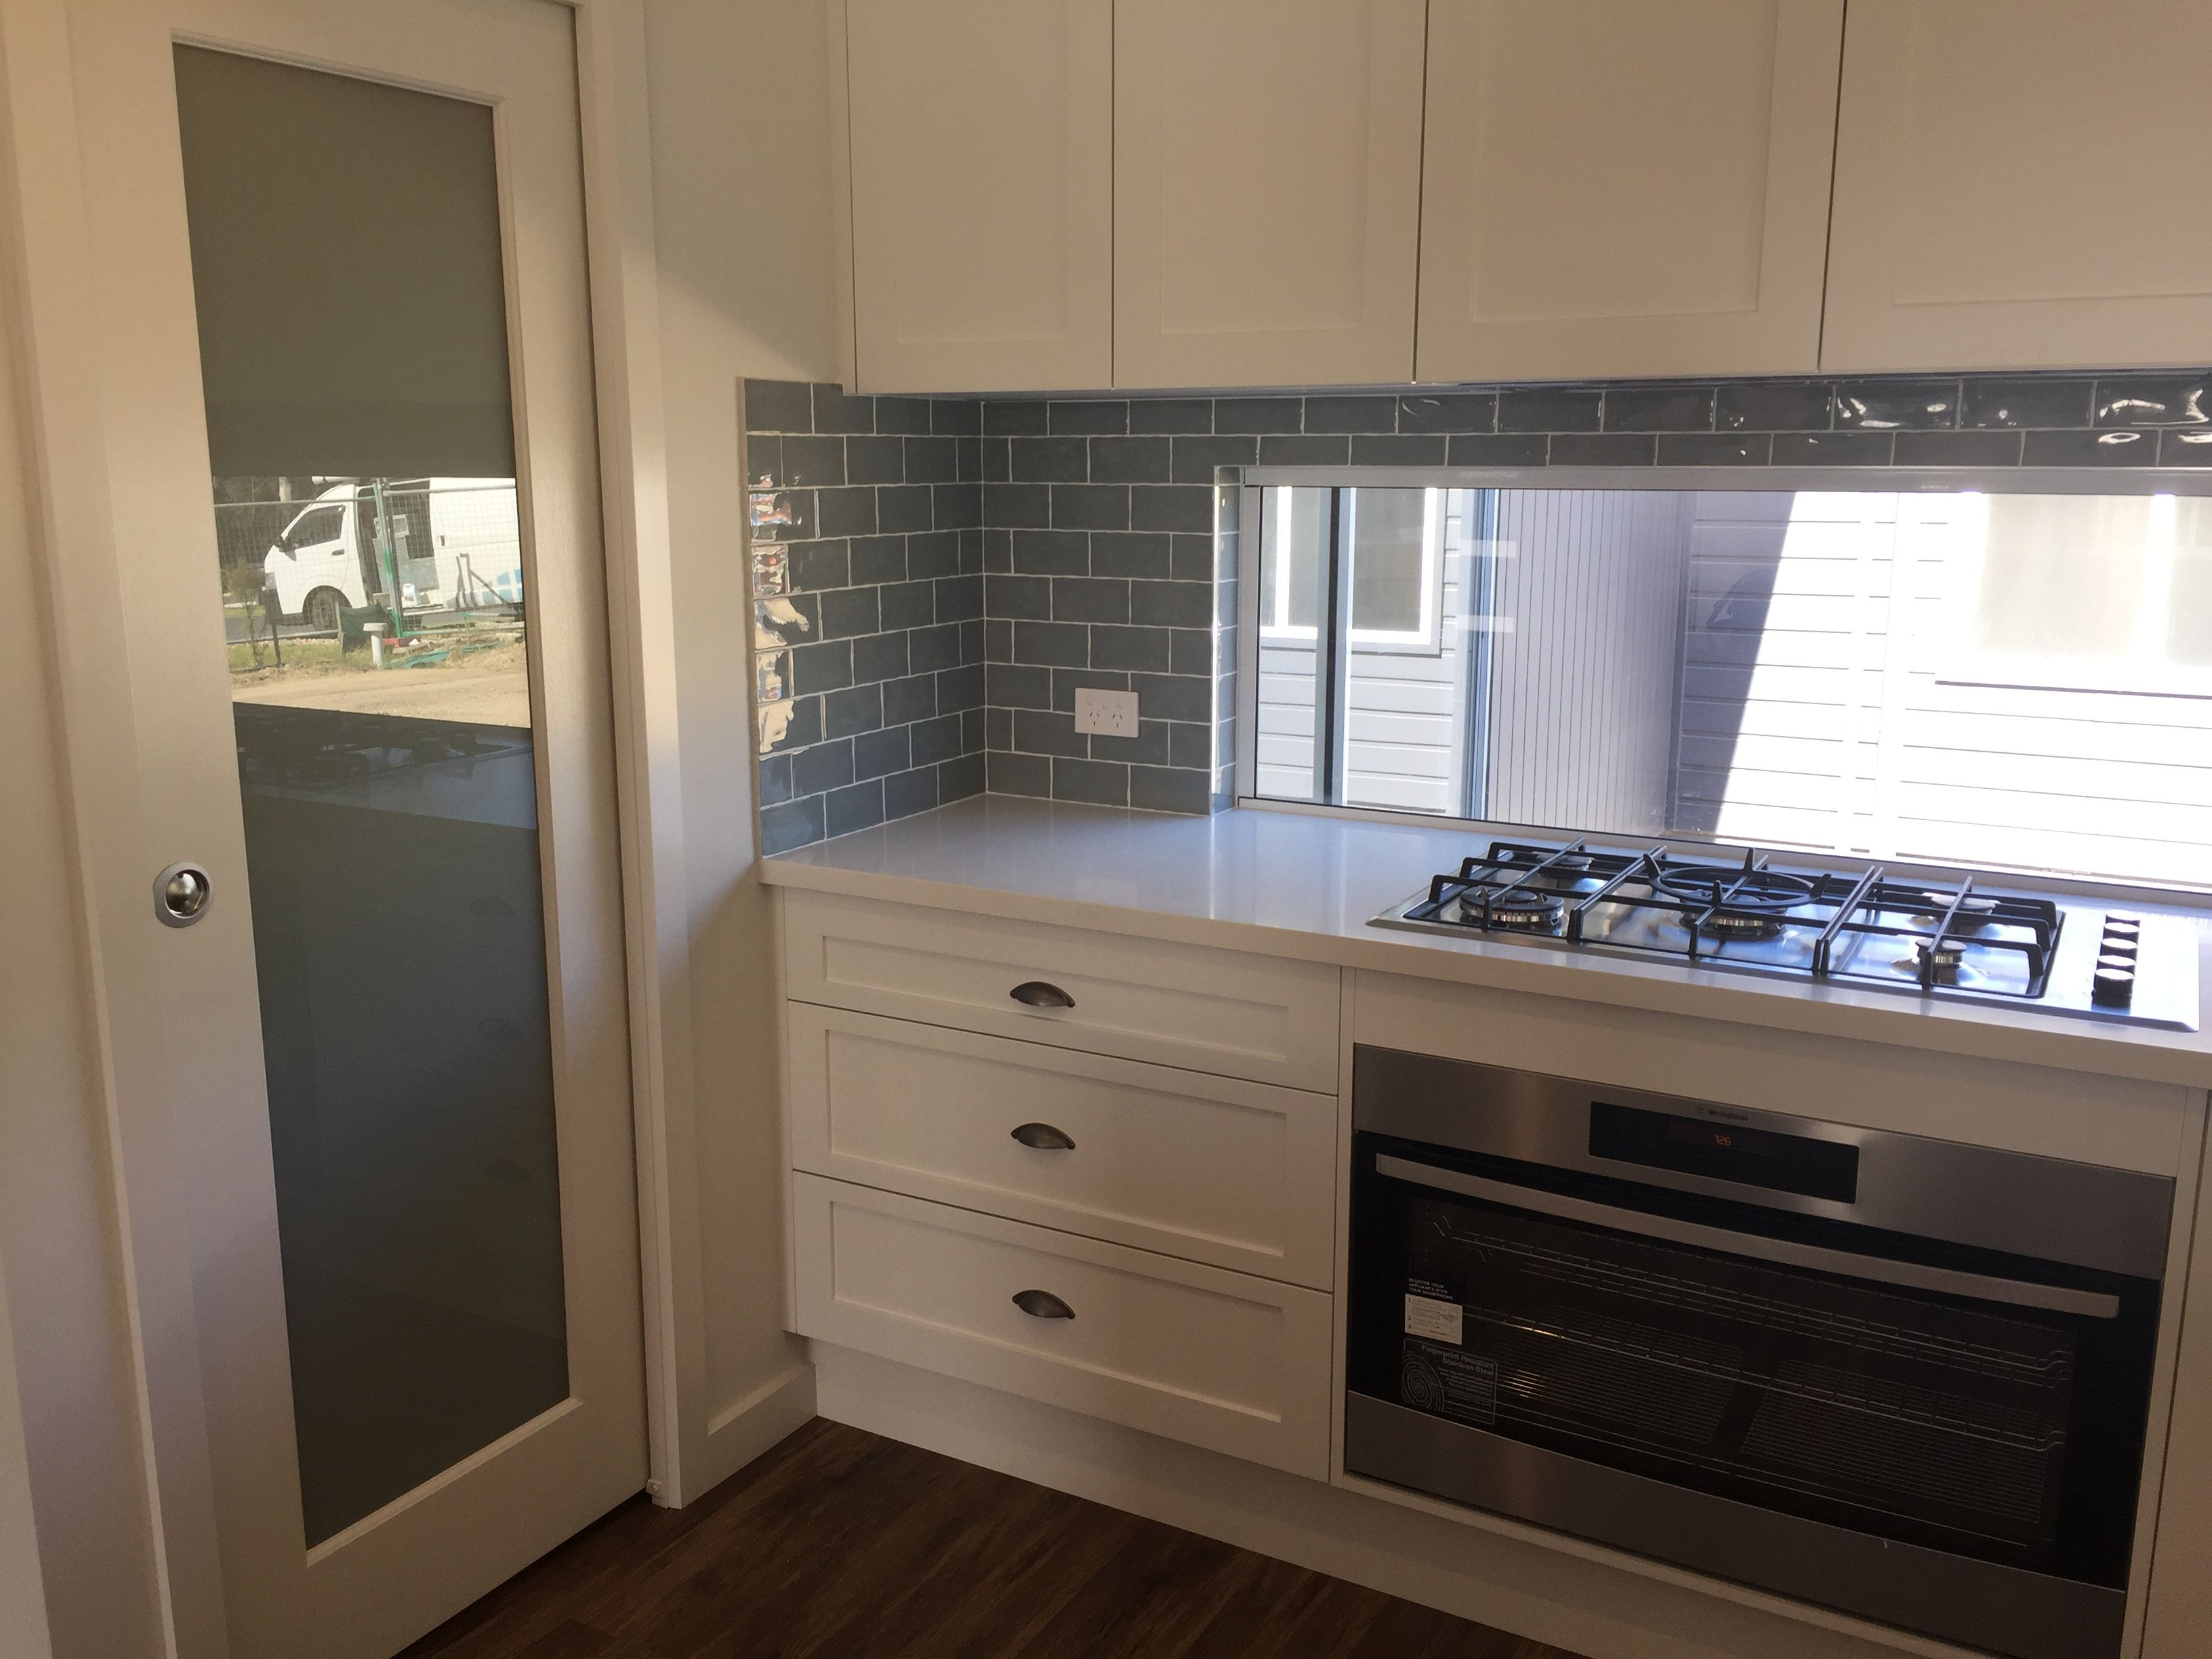 Built In Gas Cooktop And Built In Electric Oven Smeg Upgrade Shaker Style Kitchen Upgrade Builtin Oven Shaker Style Kitchens Kitchen Oven